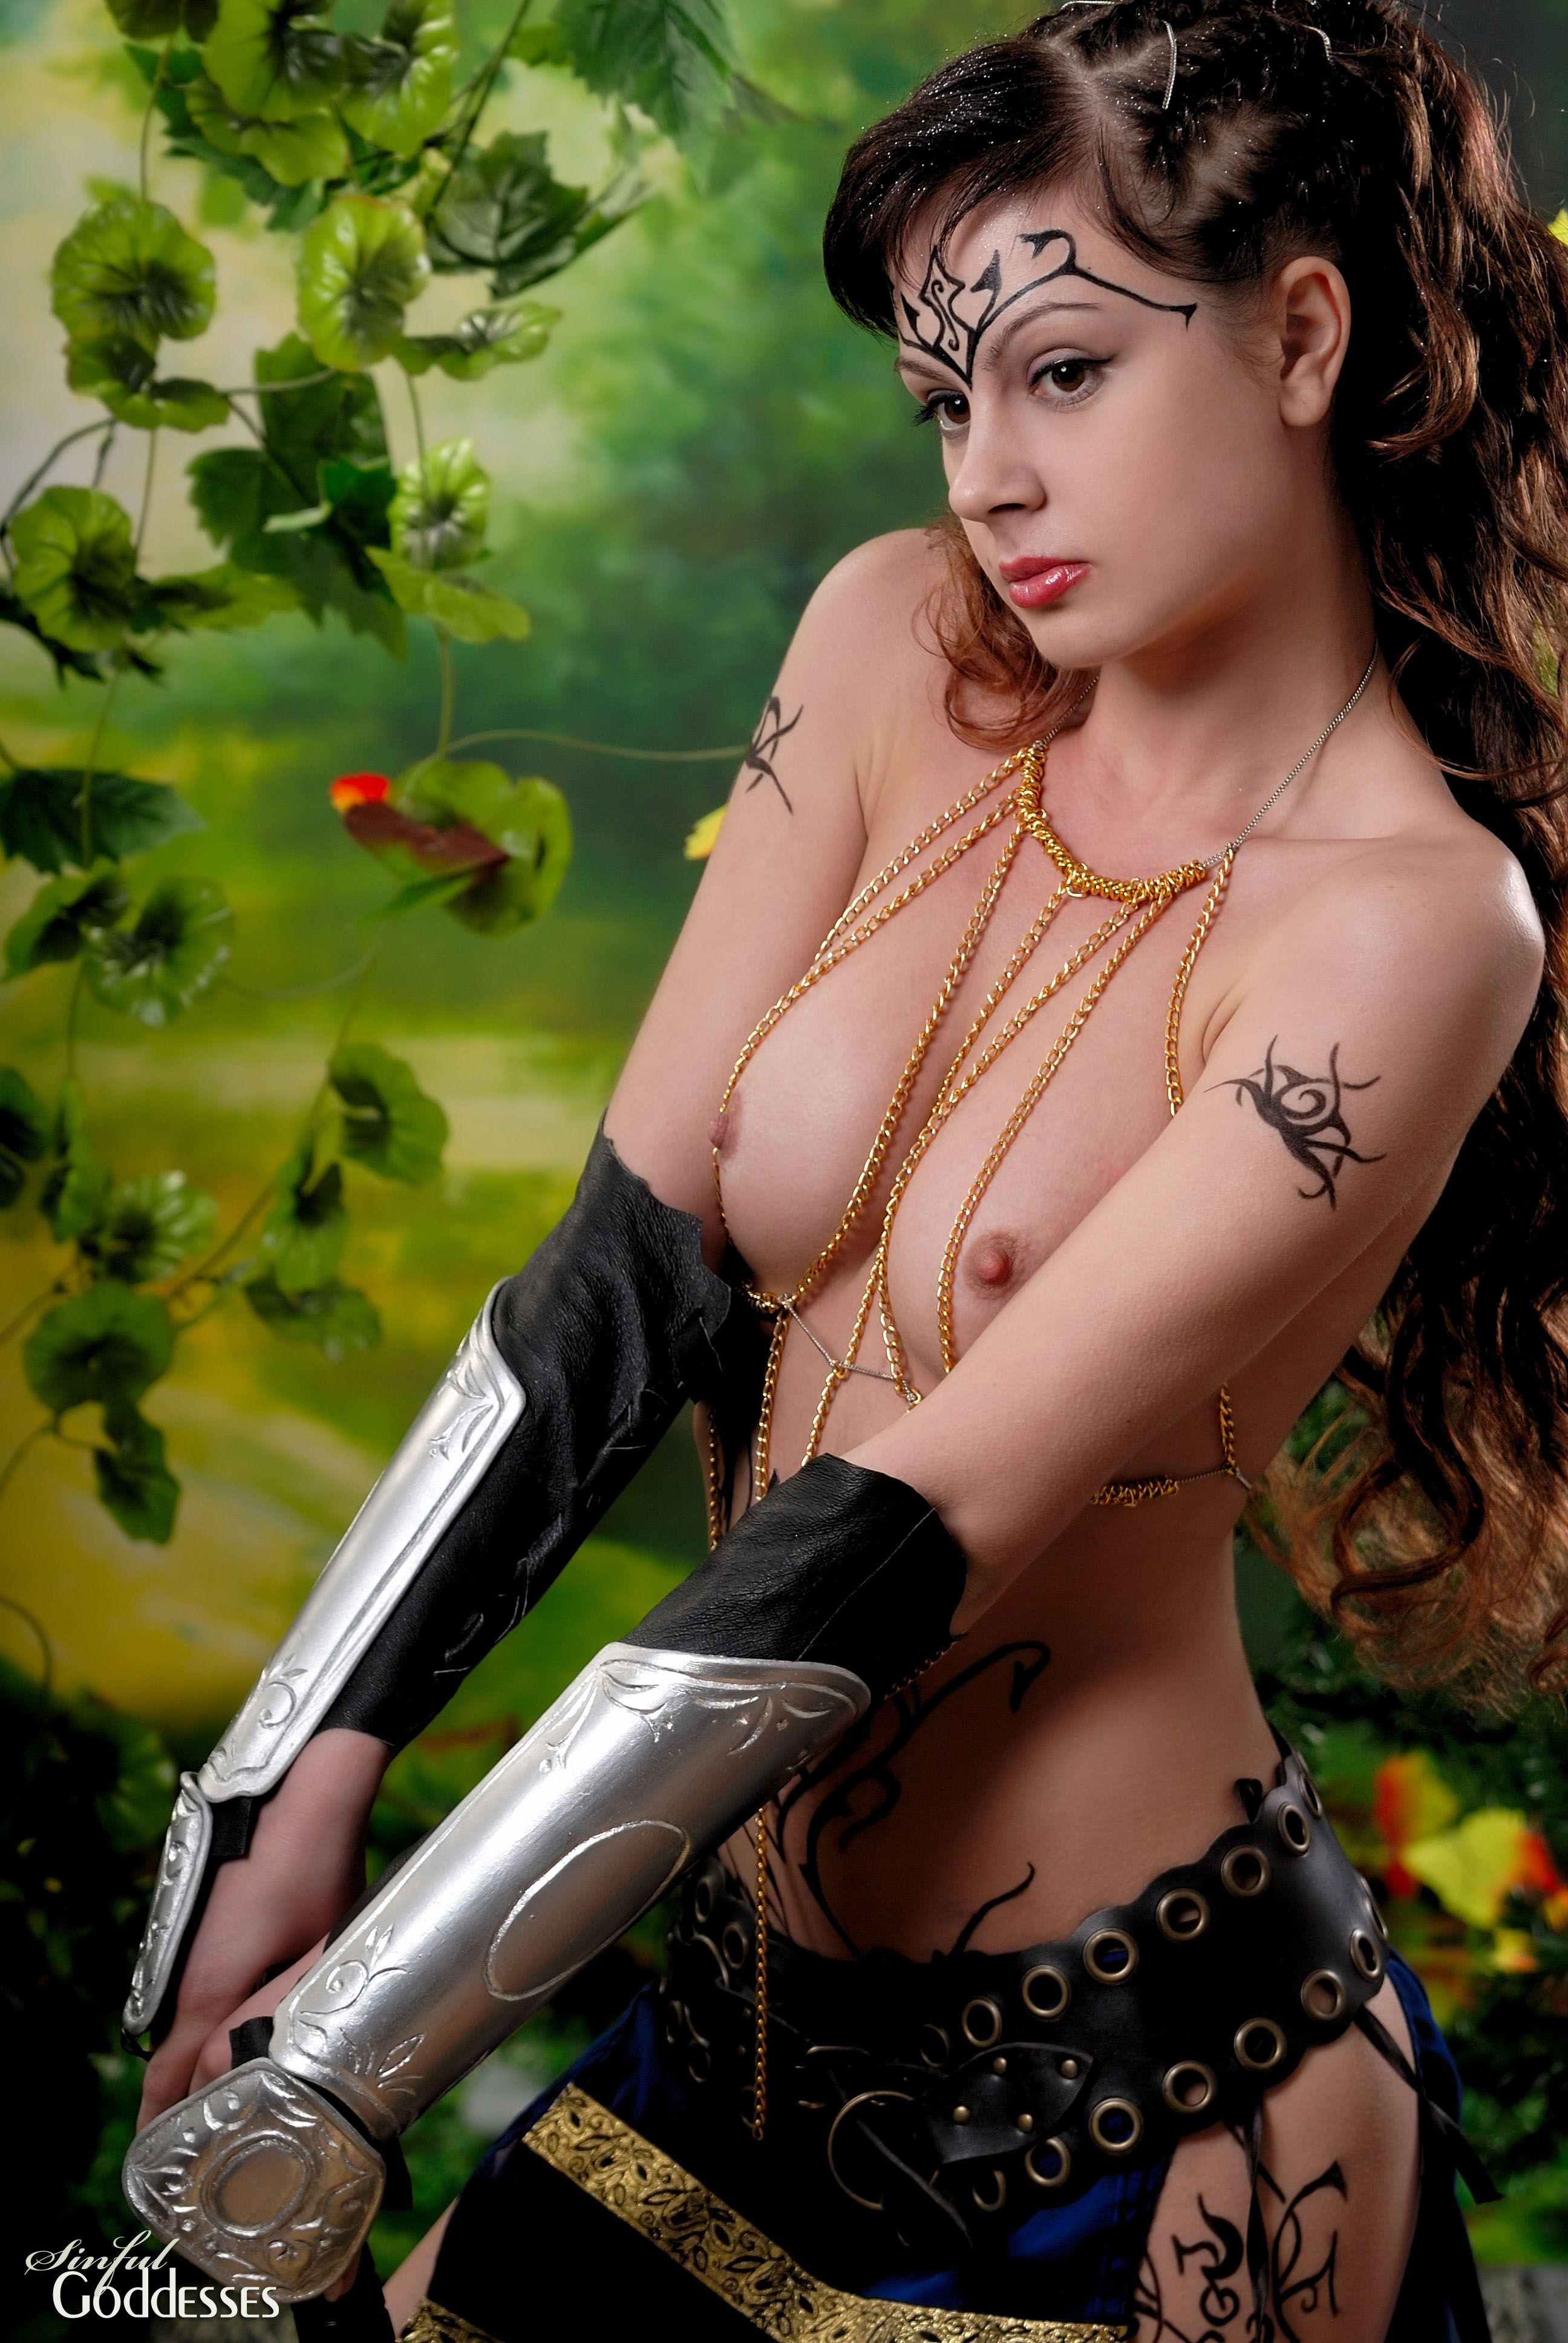 Girl hot warrior topless nackt pictures